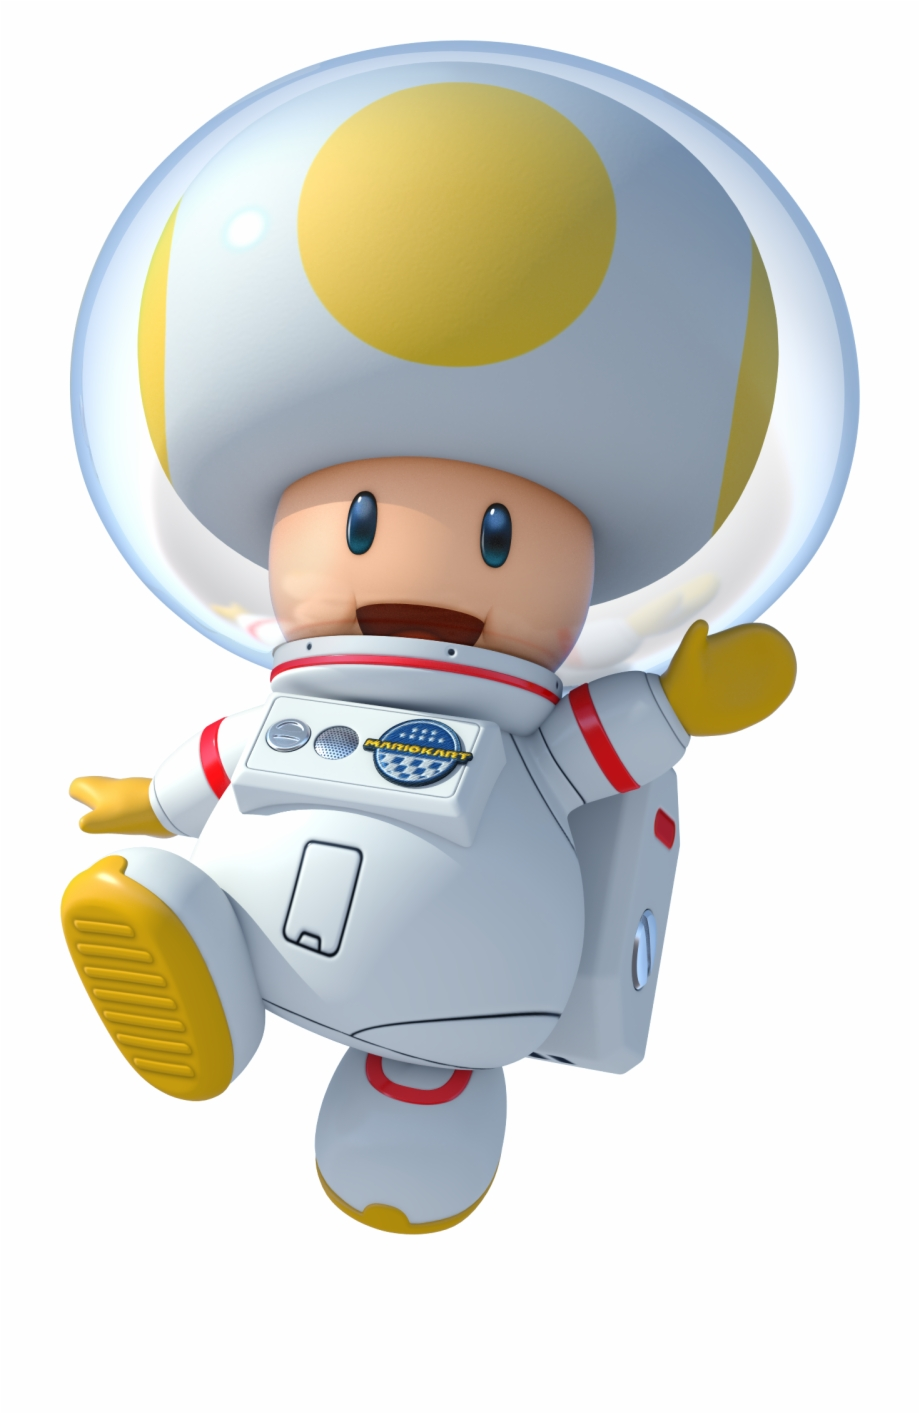 Toad Mario Kart Mario Kart 8 Deluxe Toad Transparent Png